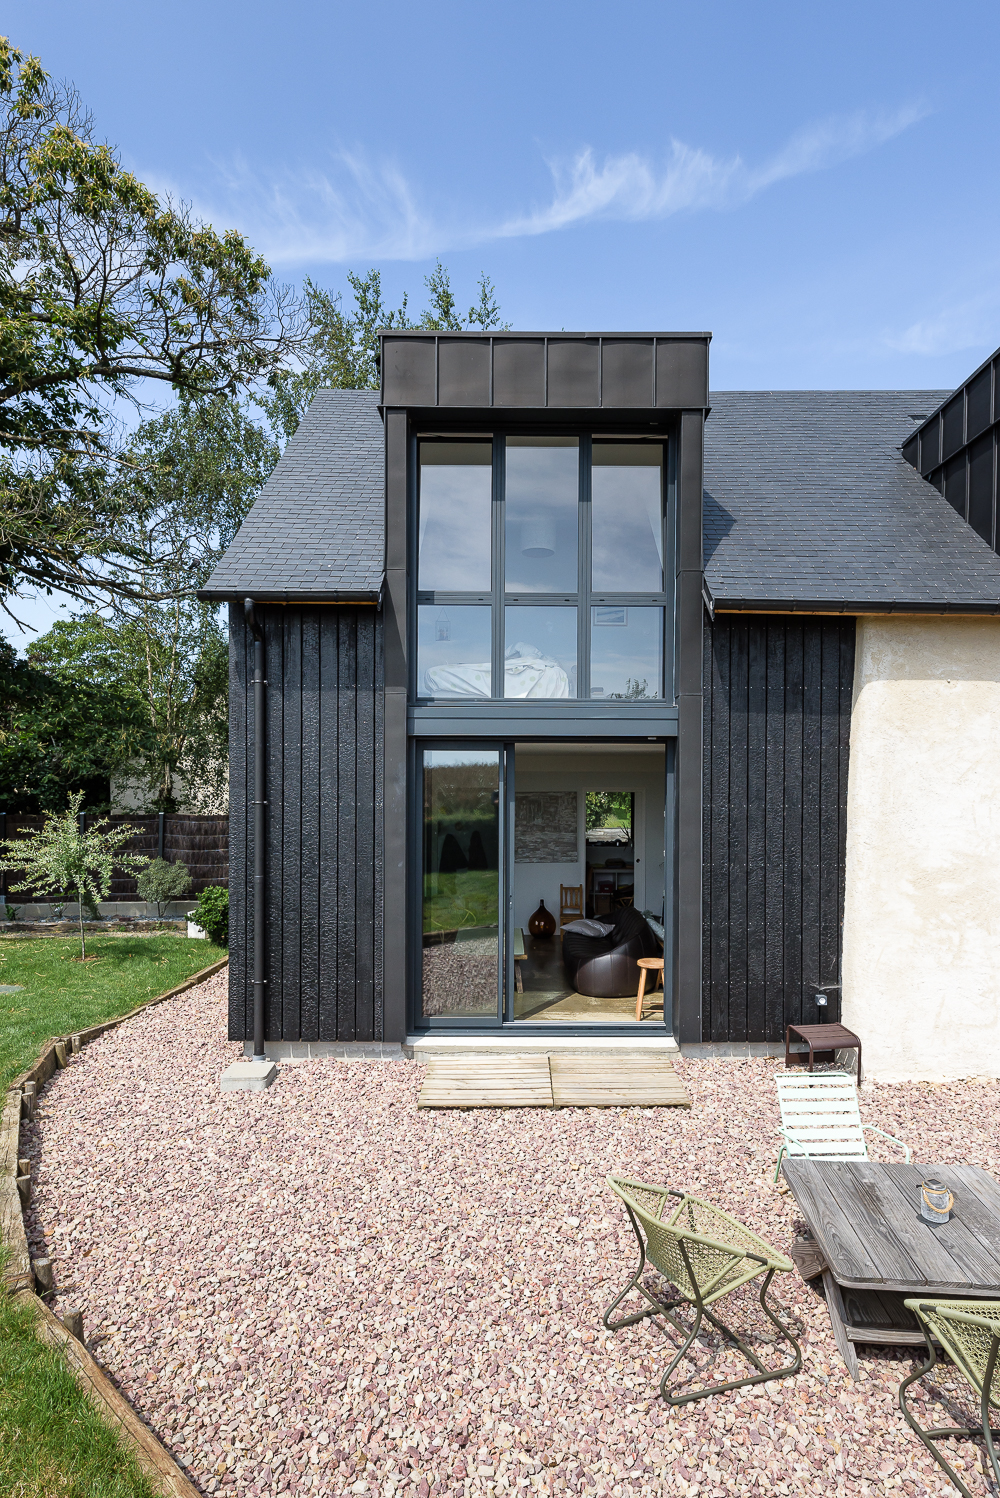 photographe d'architecture ©INTERVALphoto : Briand & Renault Architectes, extension, rénovation maison individuelle, Pacé (35)